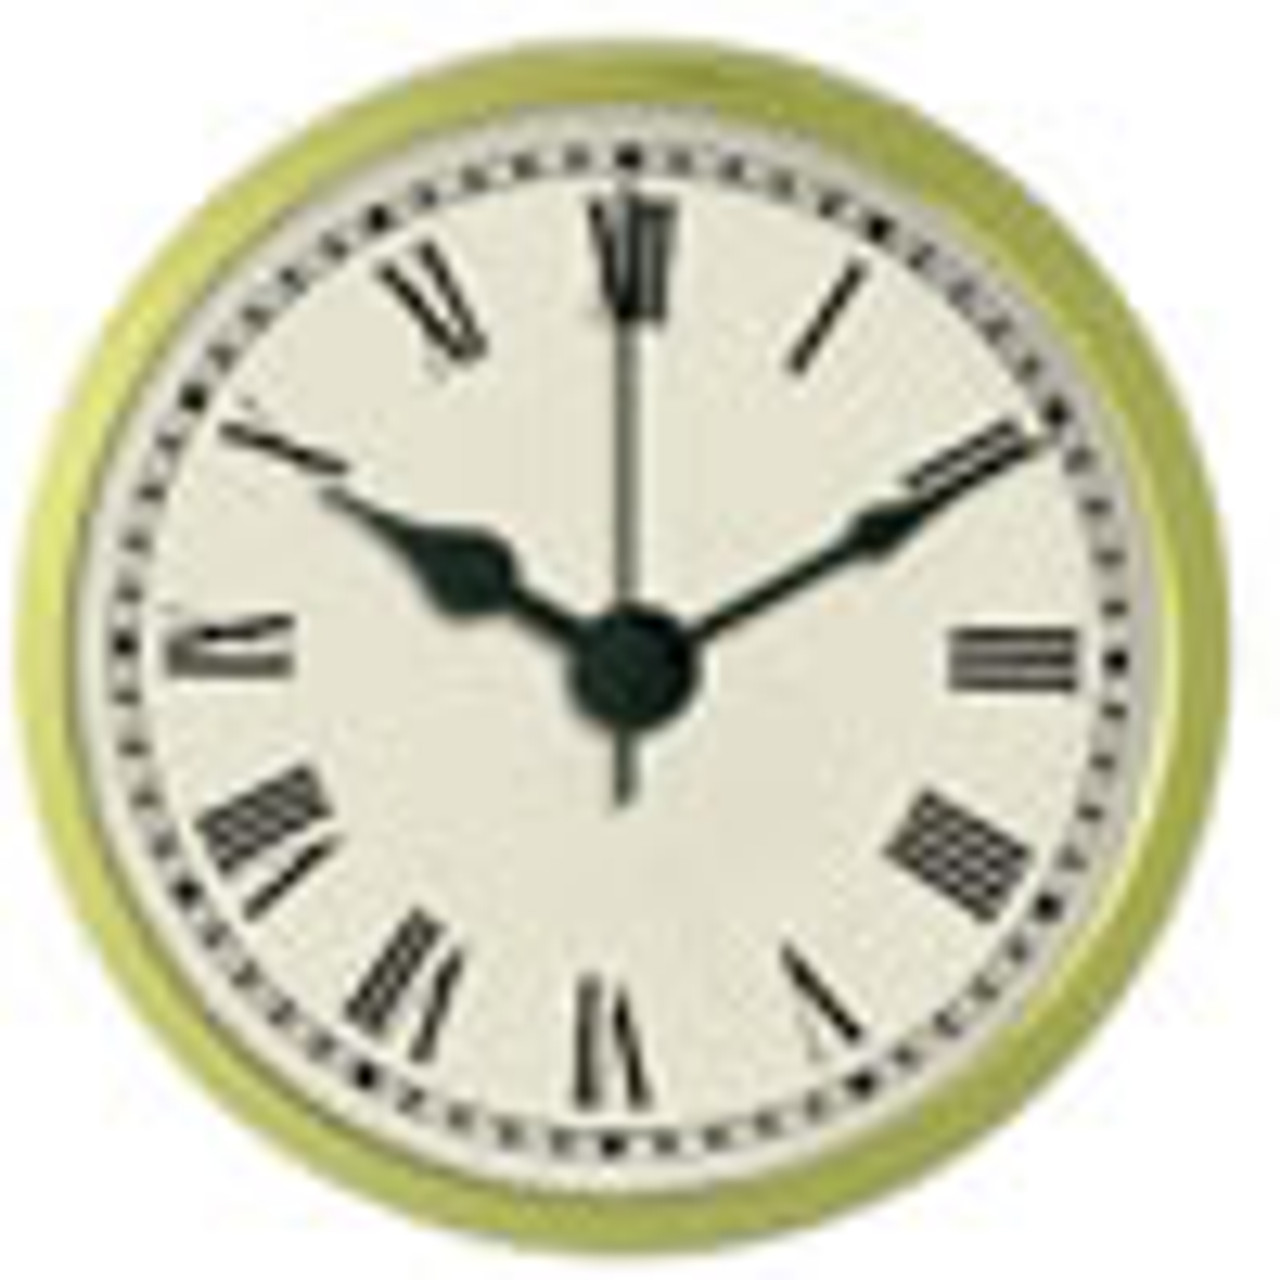 2-1/4 Inch (59mm) Ivory Face Roman Clock Insert/Fit Up